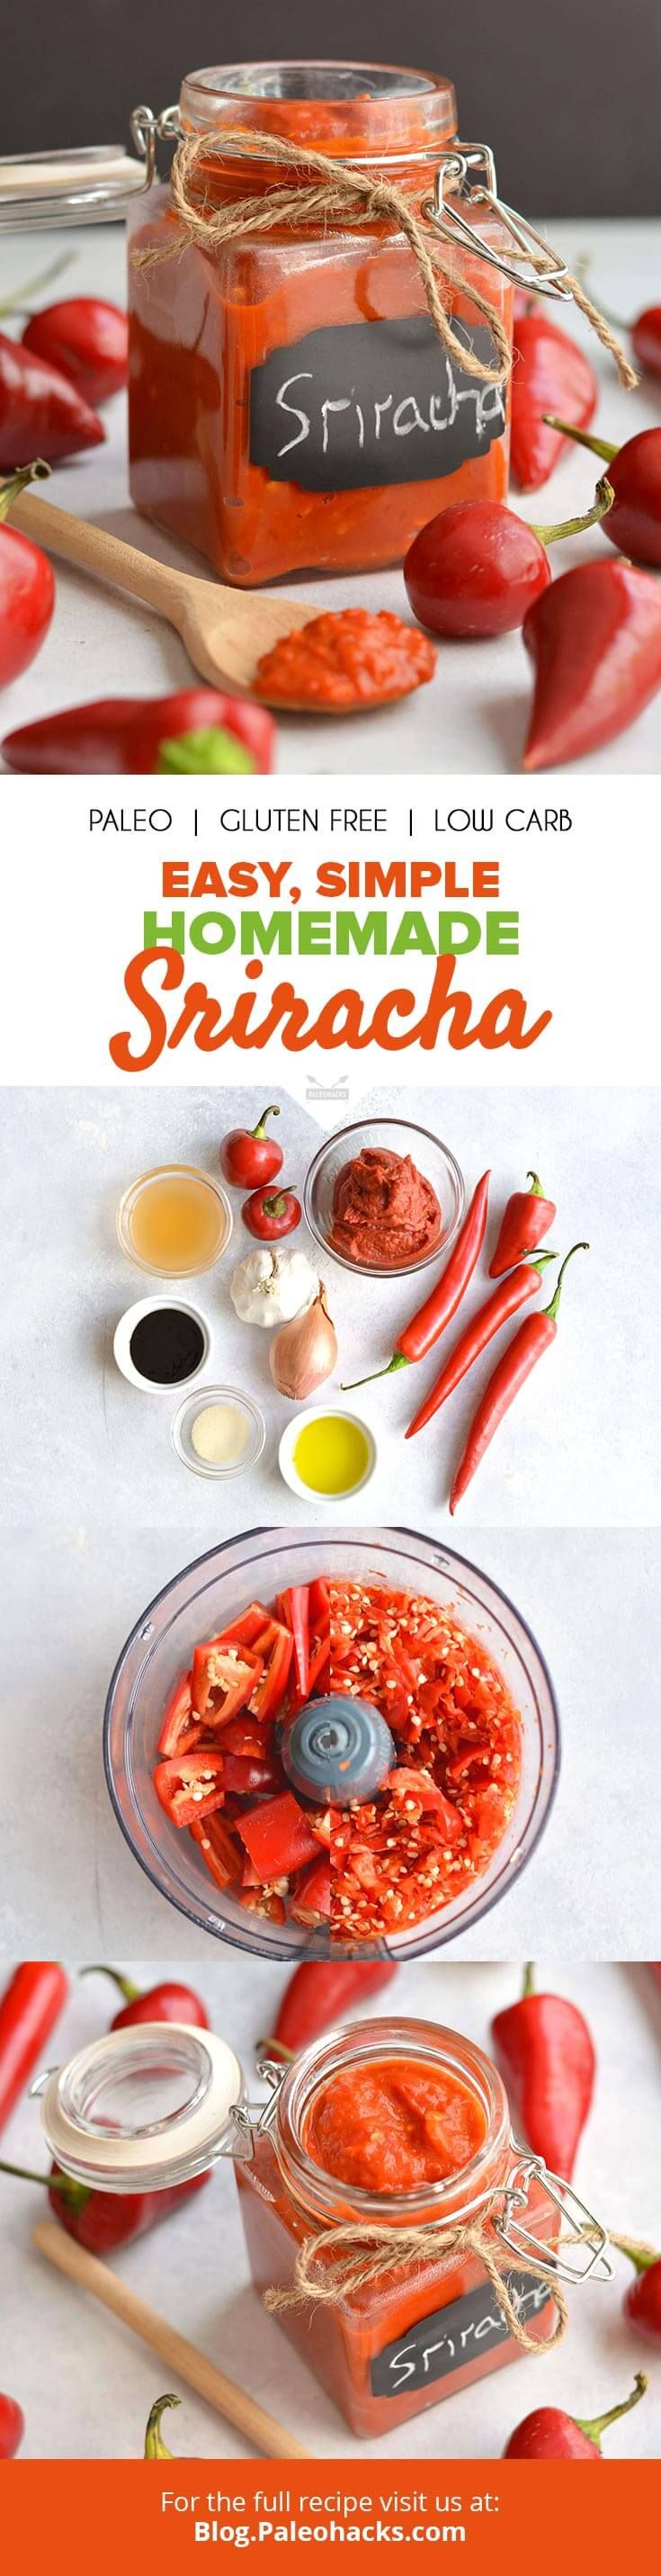 Heat up your next meal with this easy, homemade sriracha sauce recipe! Get the recipe here: http://paleo.co/sriracharcp